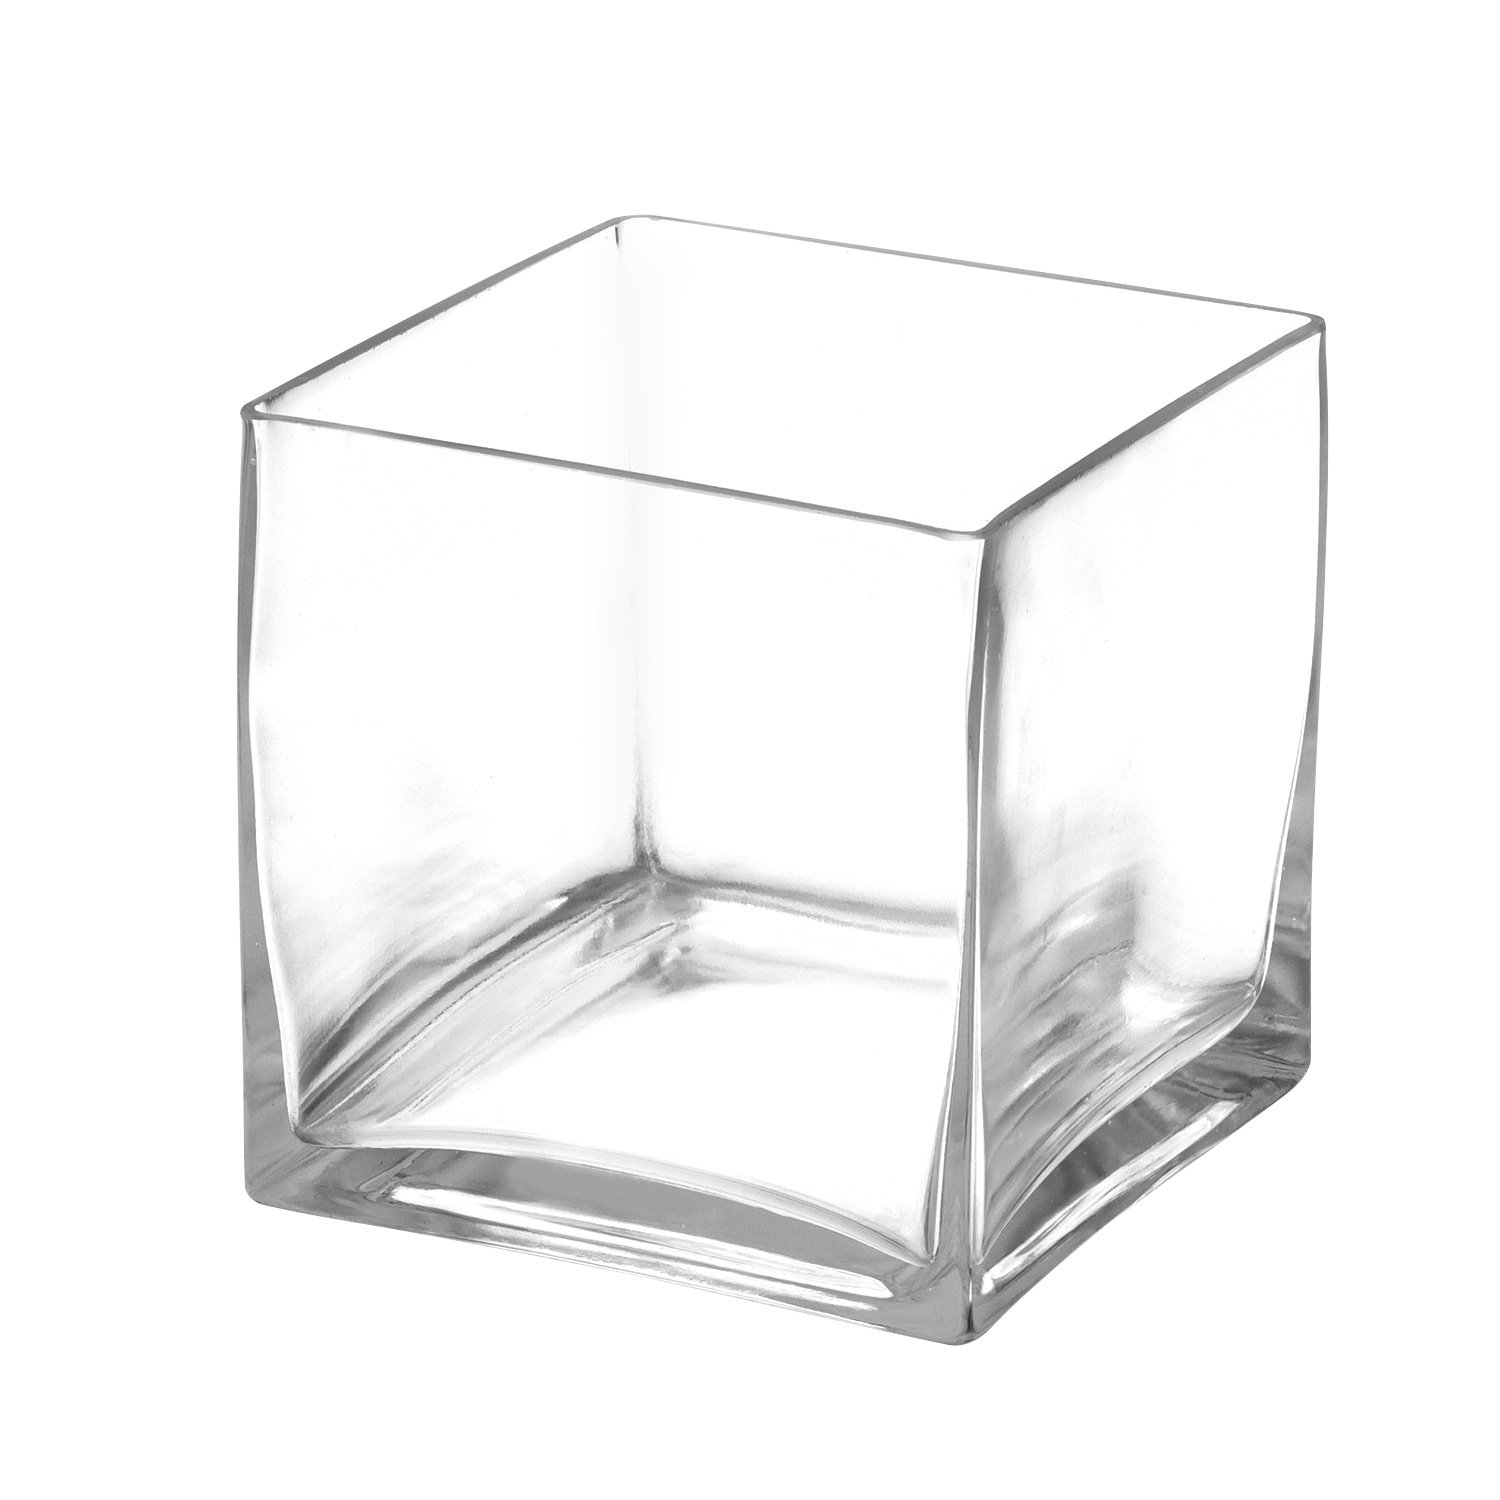 Royal Imports Flower Glass Vase Decorative Centerpiece Home Wedding Clear Glass, Cube Shape, 5'' Tall, 5''x5'' Opening